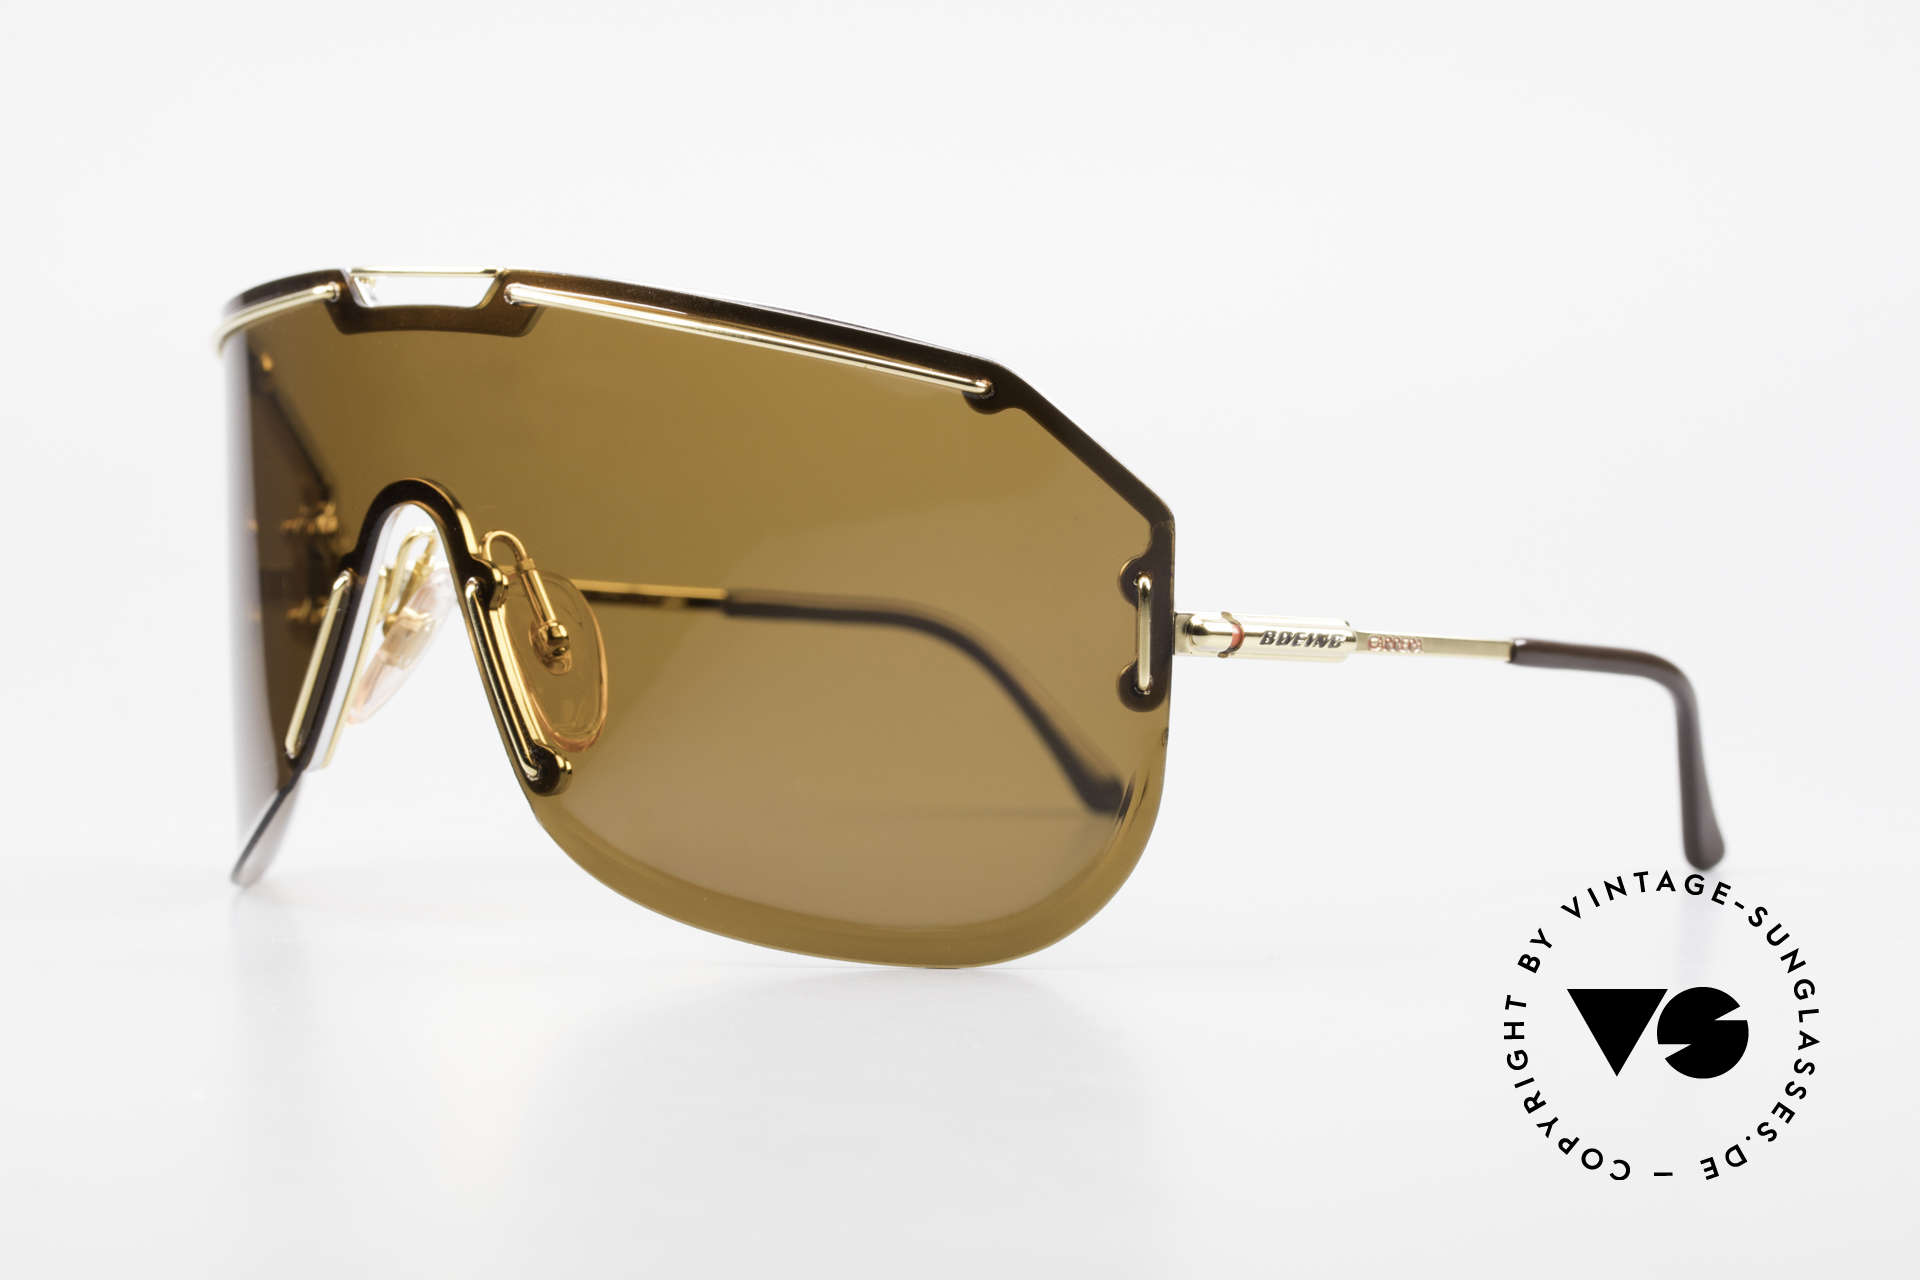 Boeing 5703 80's Luxury Pilots Shades, rotatable nose pads & gold-plated frame; truly vintage, Made for Men